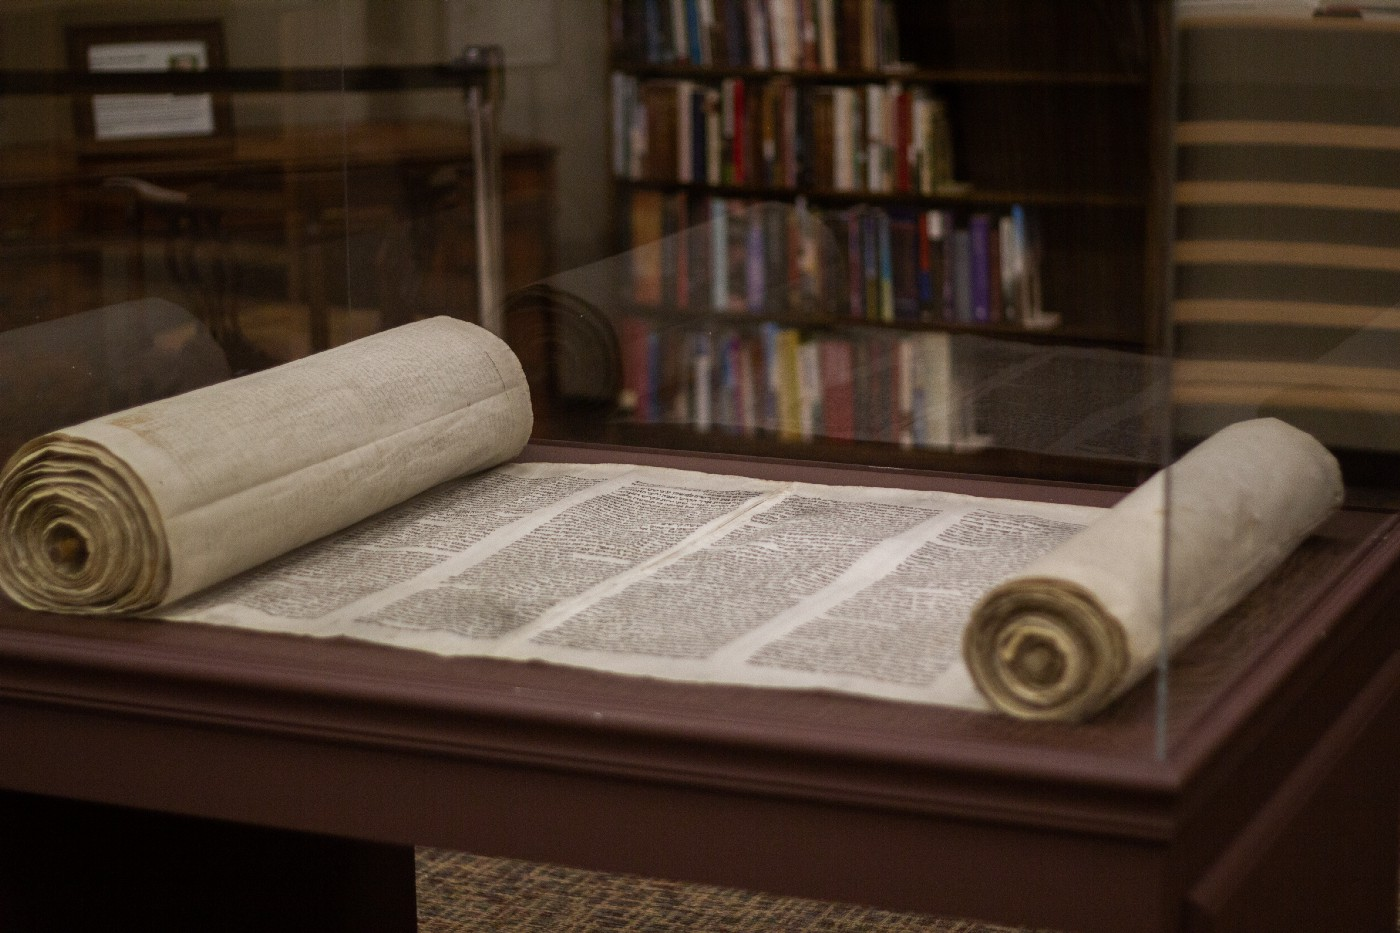 A scroll in a display case on a table